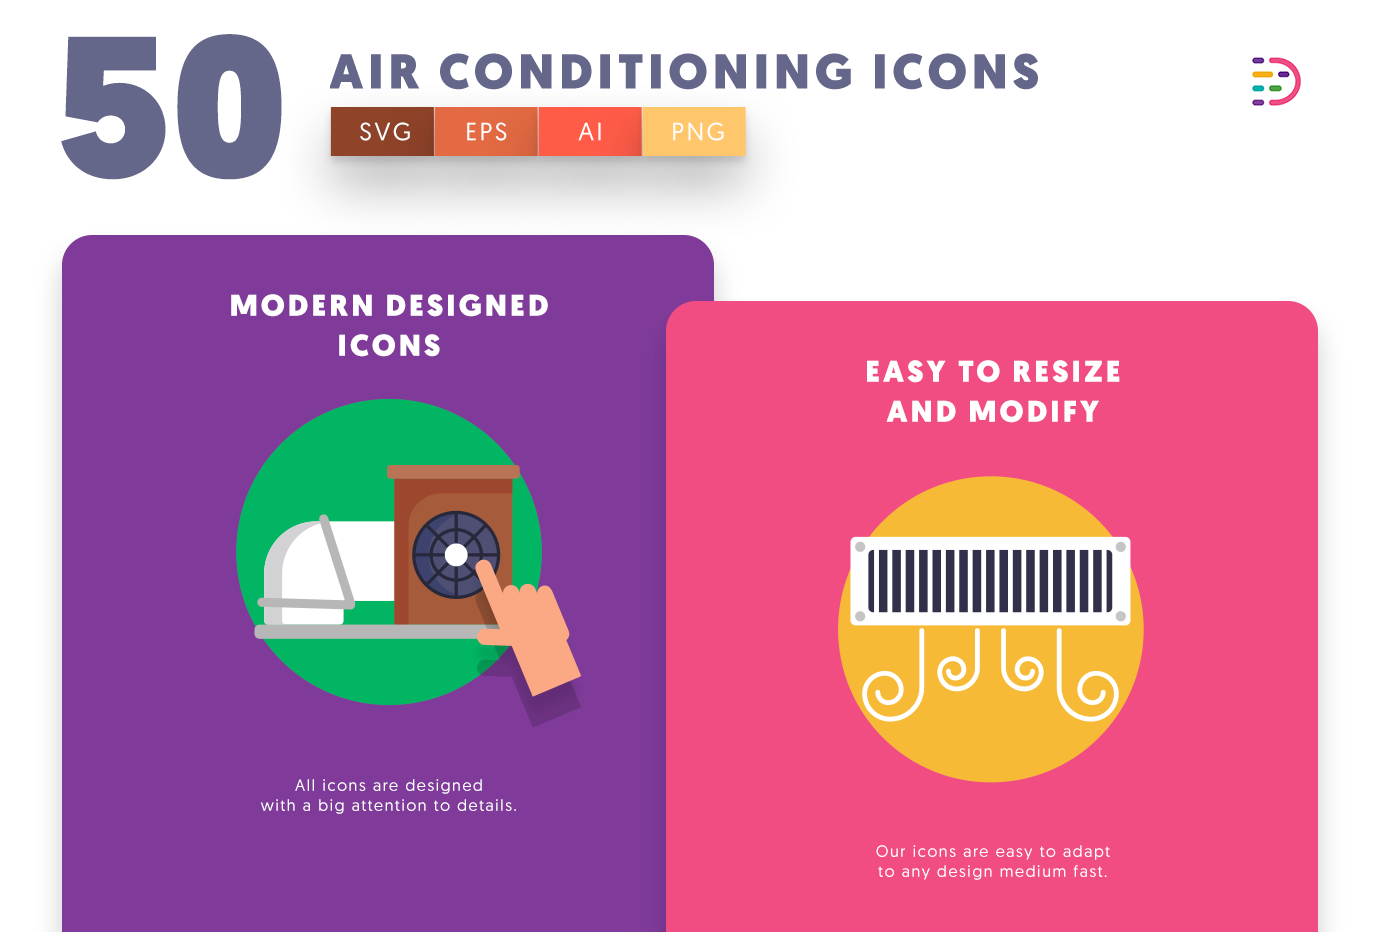 Air Conditioning icons png/svg/eps